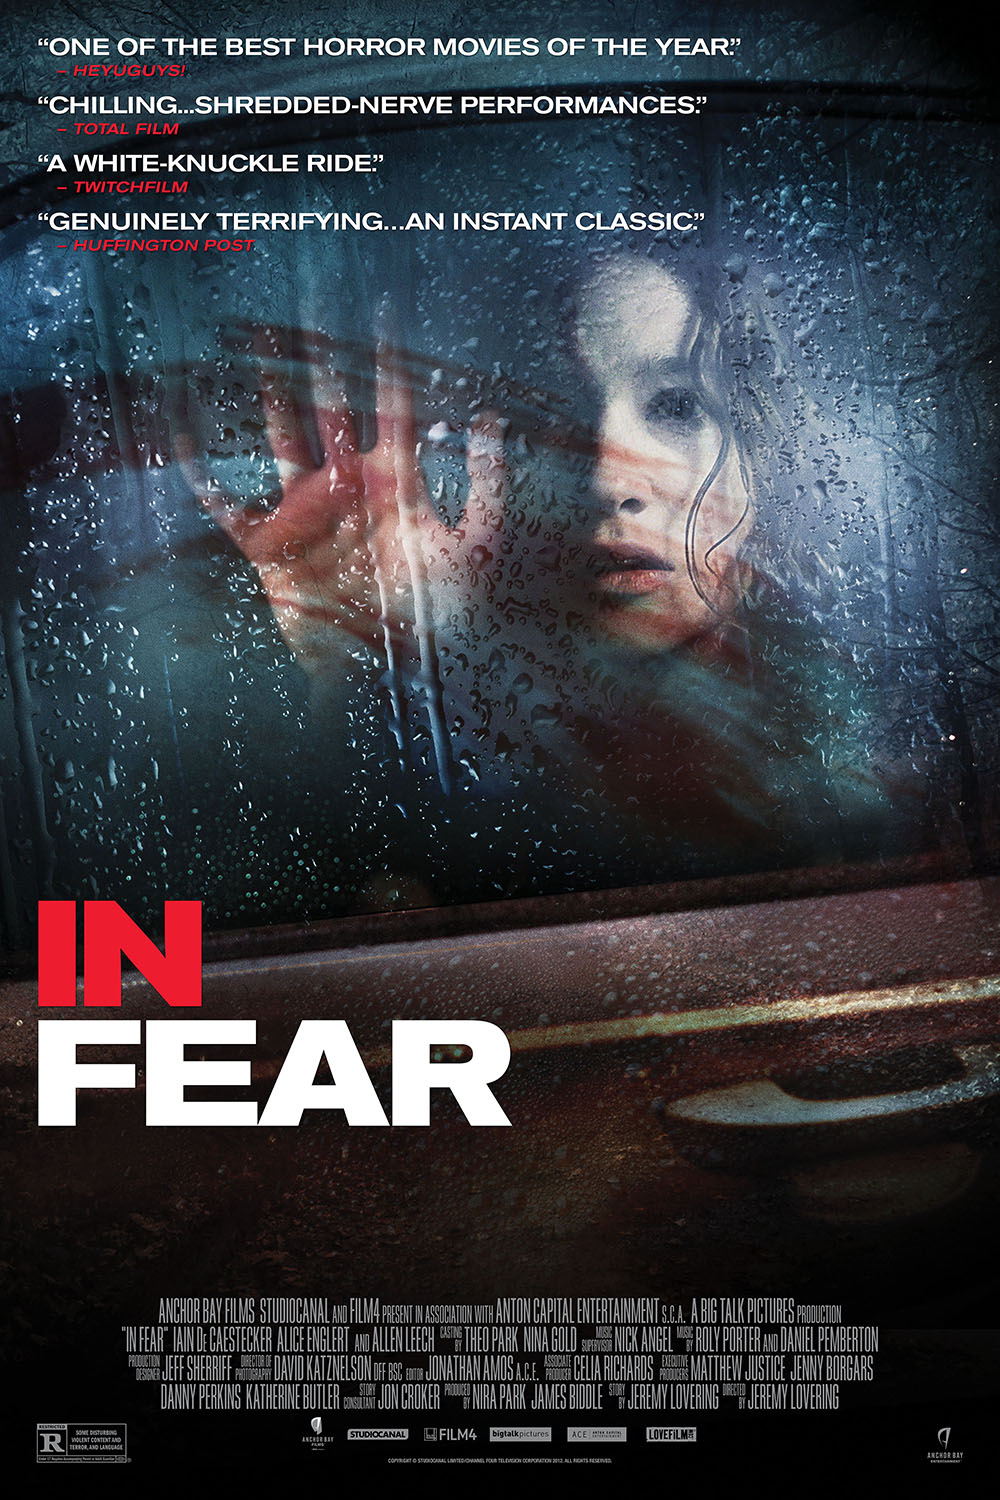 In-Fear-Poster-03